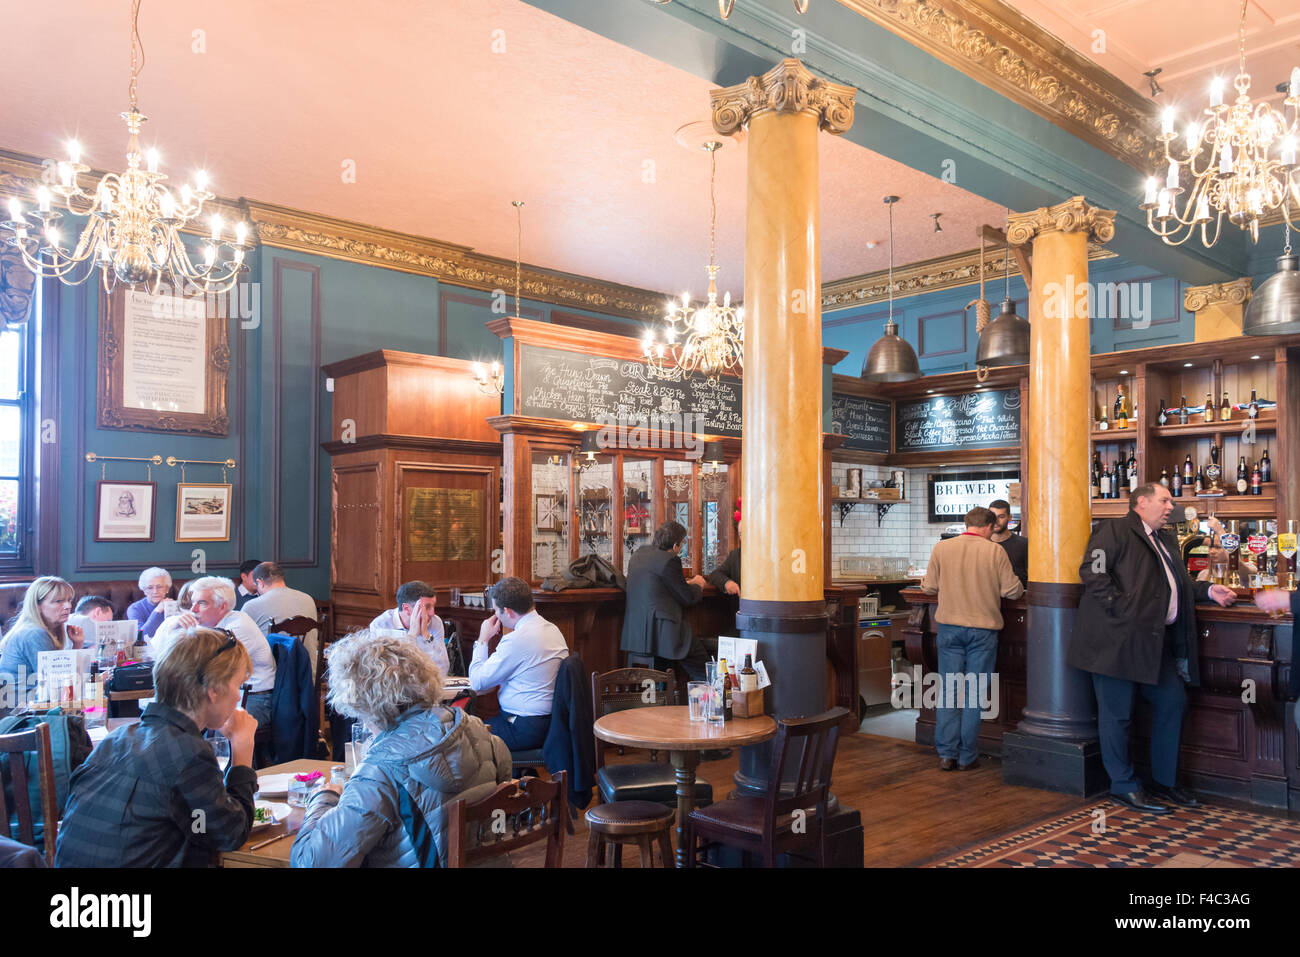 Interior of The Hung Drawn and Quartered Pub, Great Tower Street, City of London, London, England, United Kingdom - Stock Image